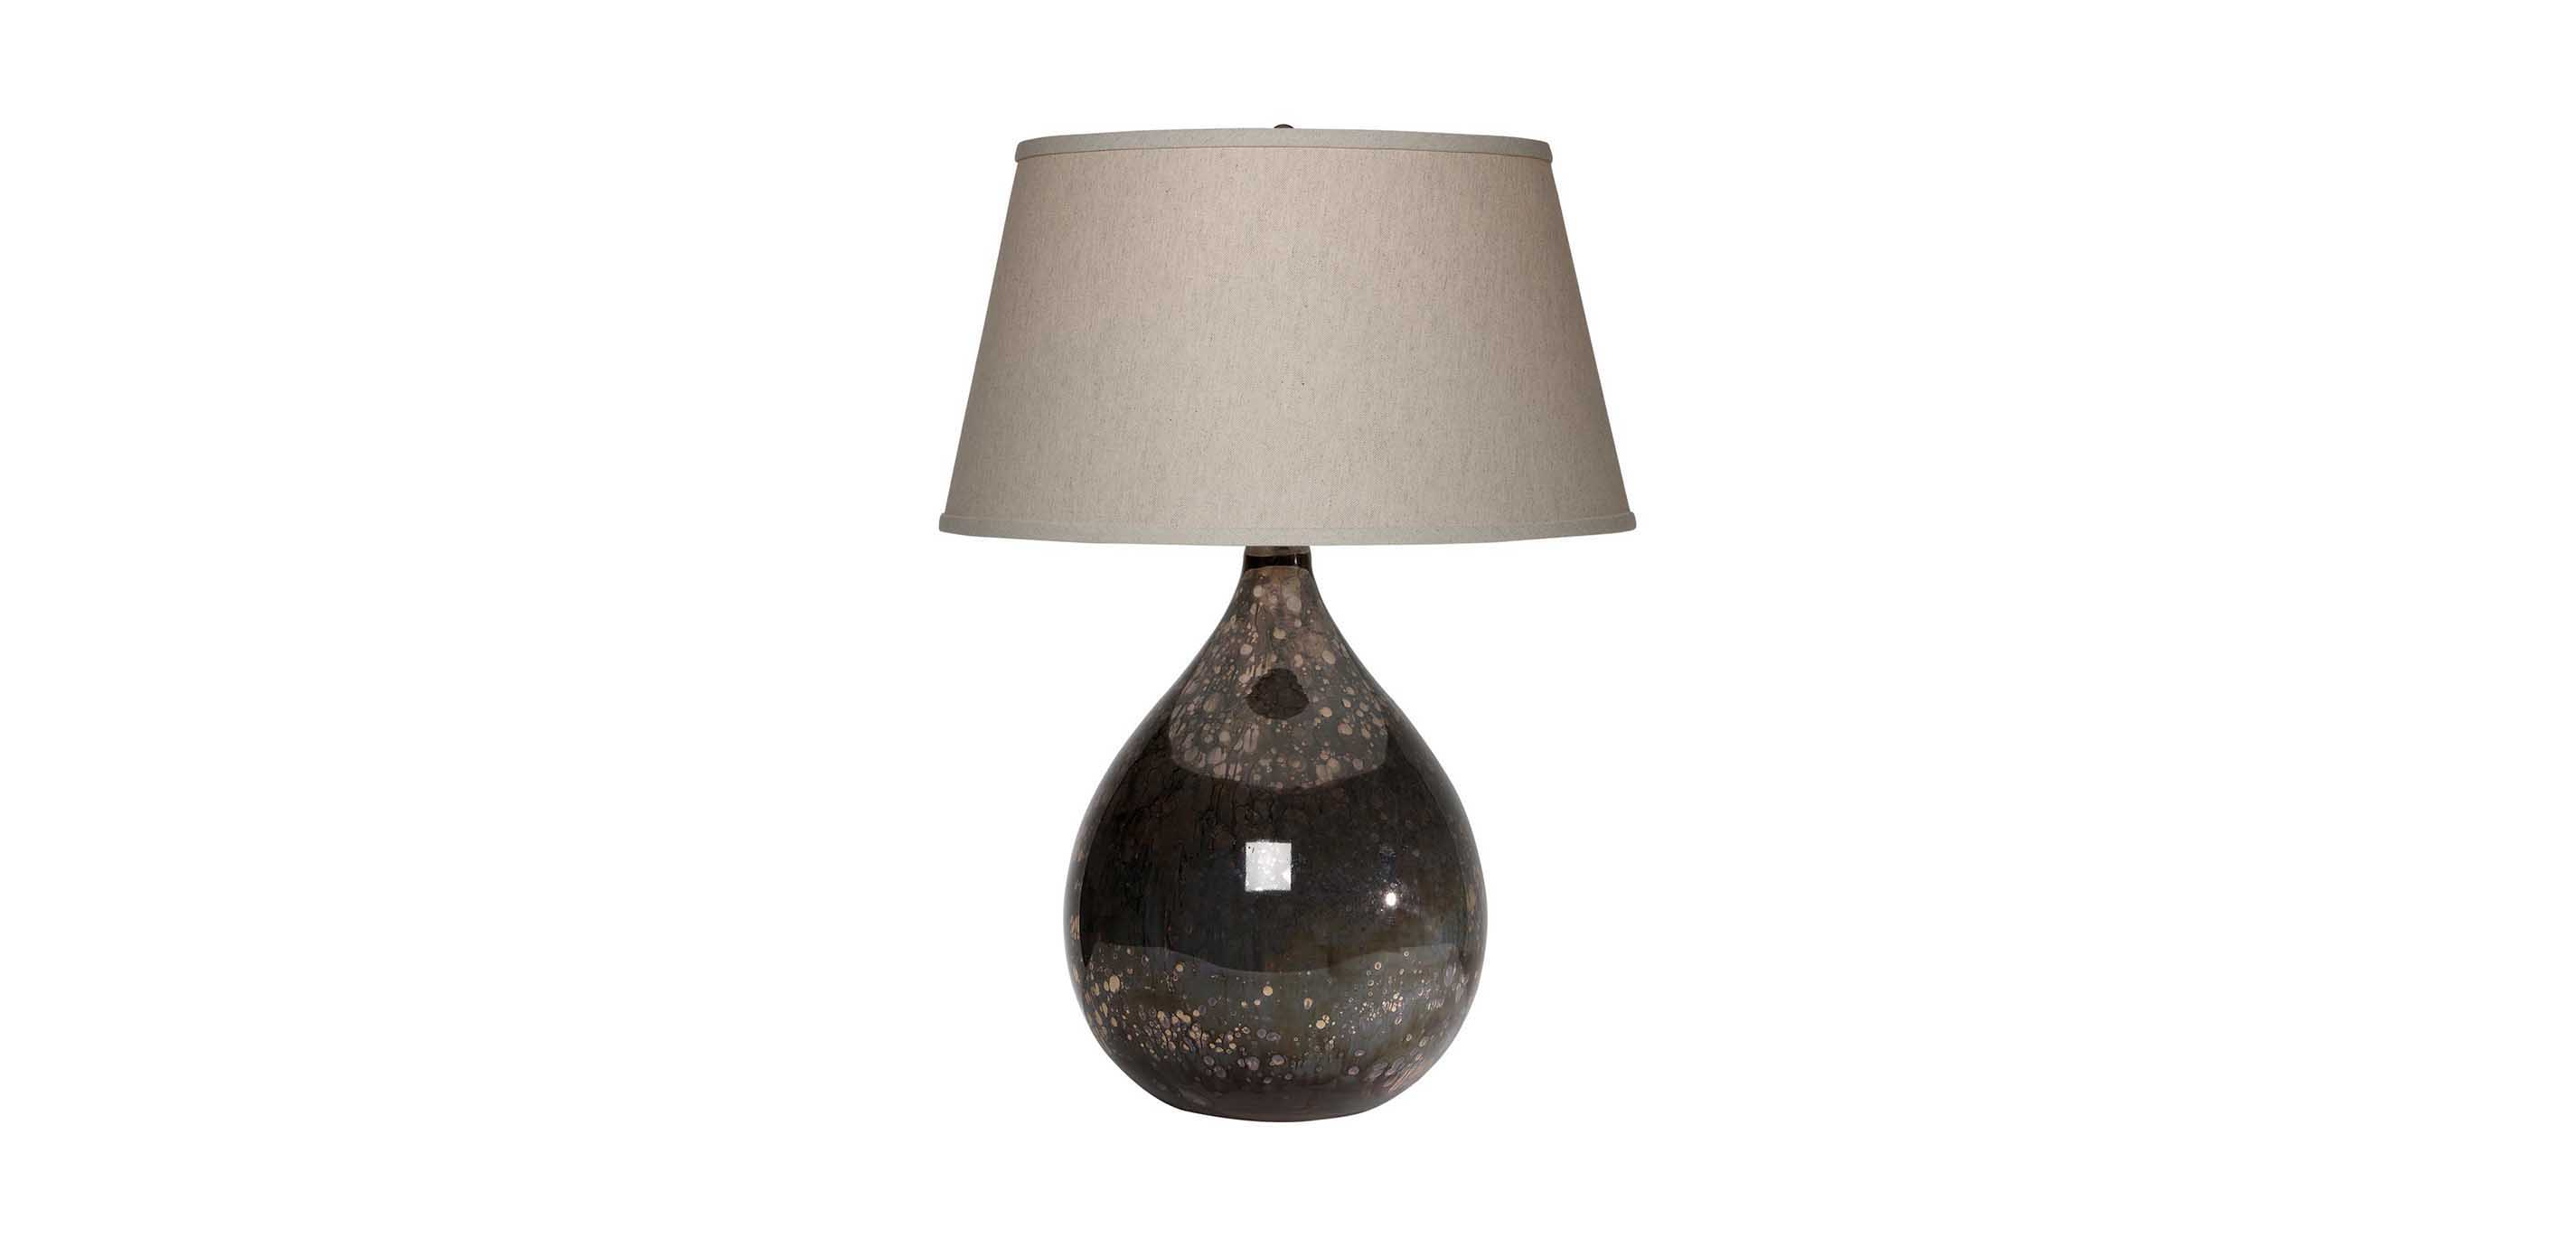 Karmady table lamp table lamps ethan allen karmady table lamp mozeypictures Image collections